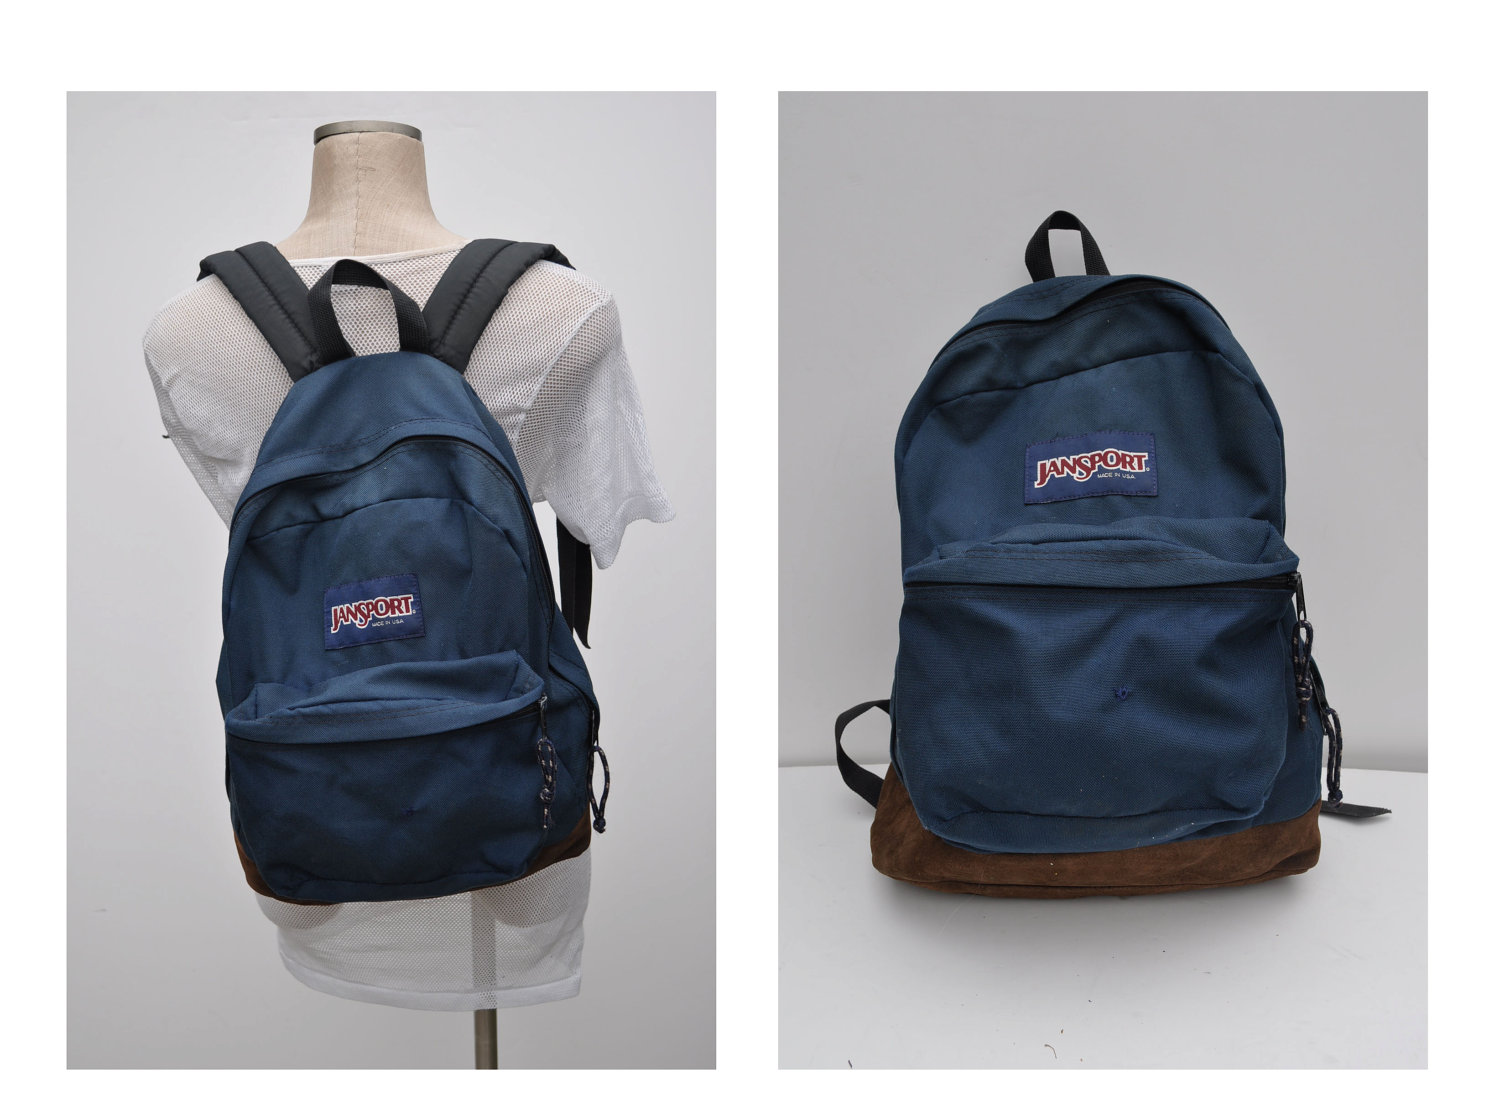 Size Of Jansport Backpack